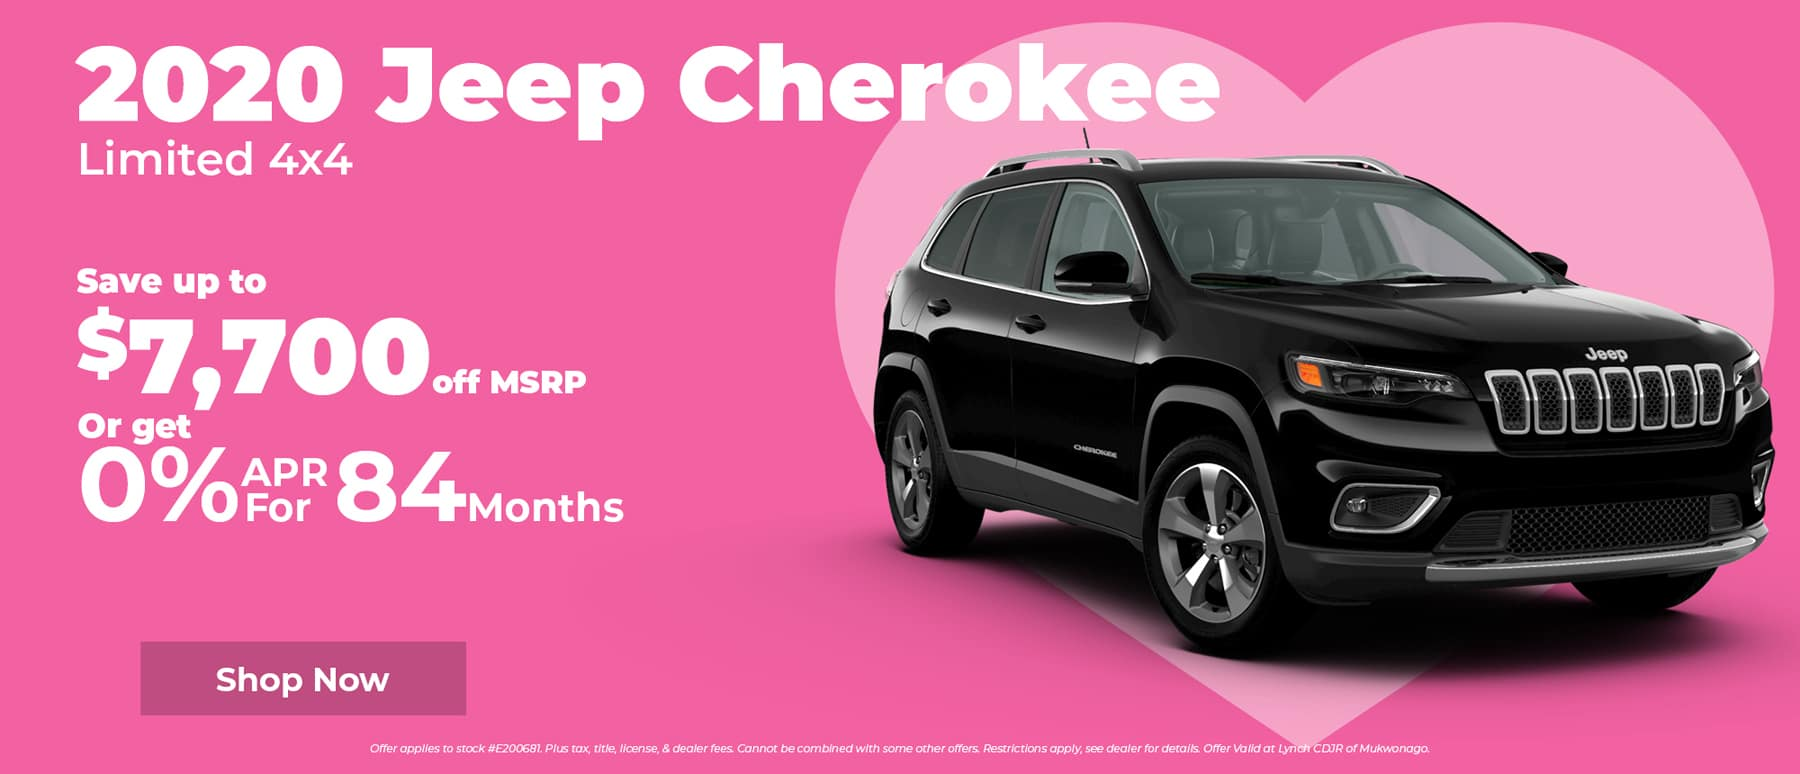 Save $7,700 on new Jeep Cherokee in Mukwonago WI